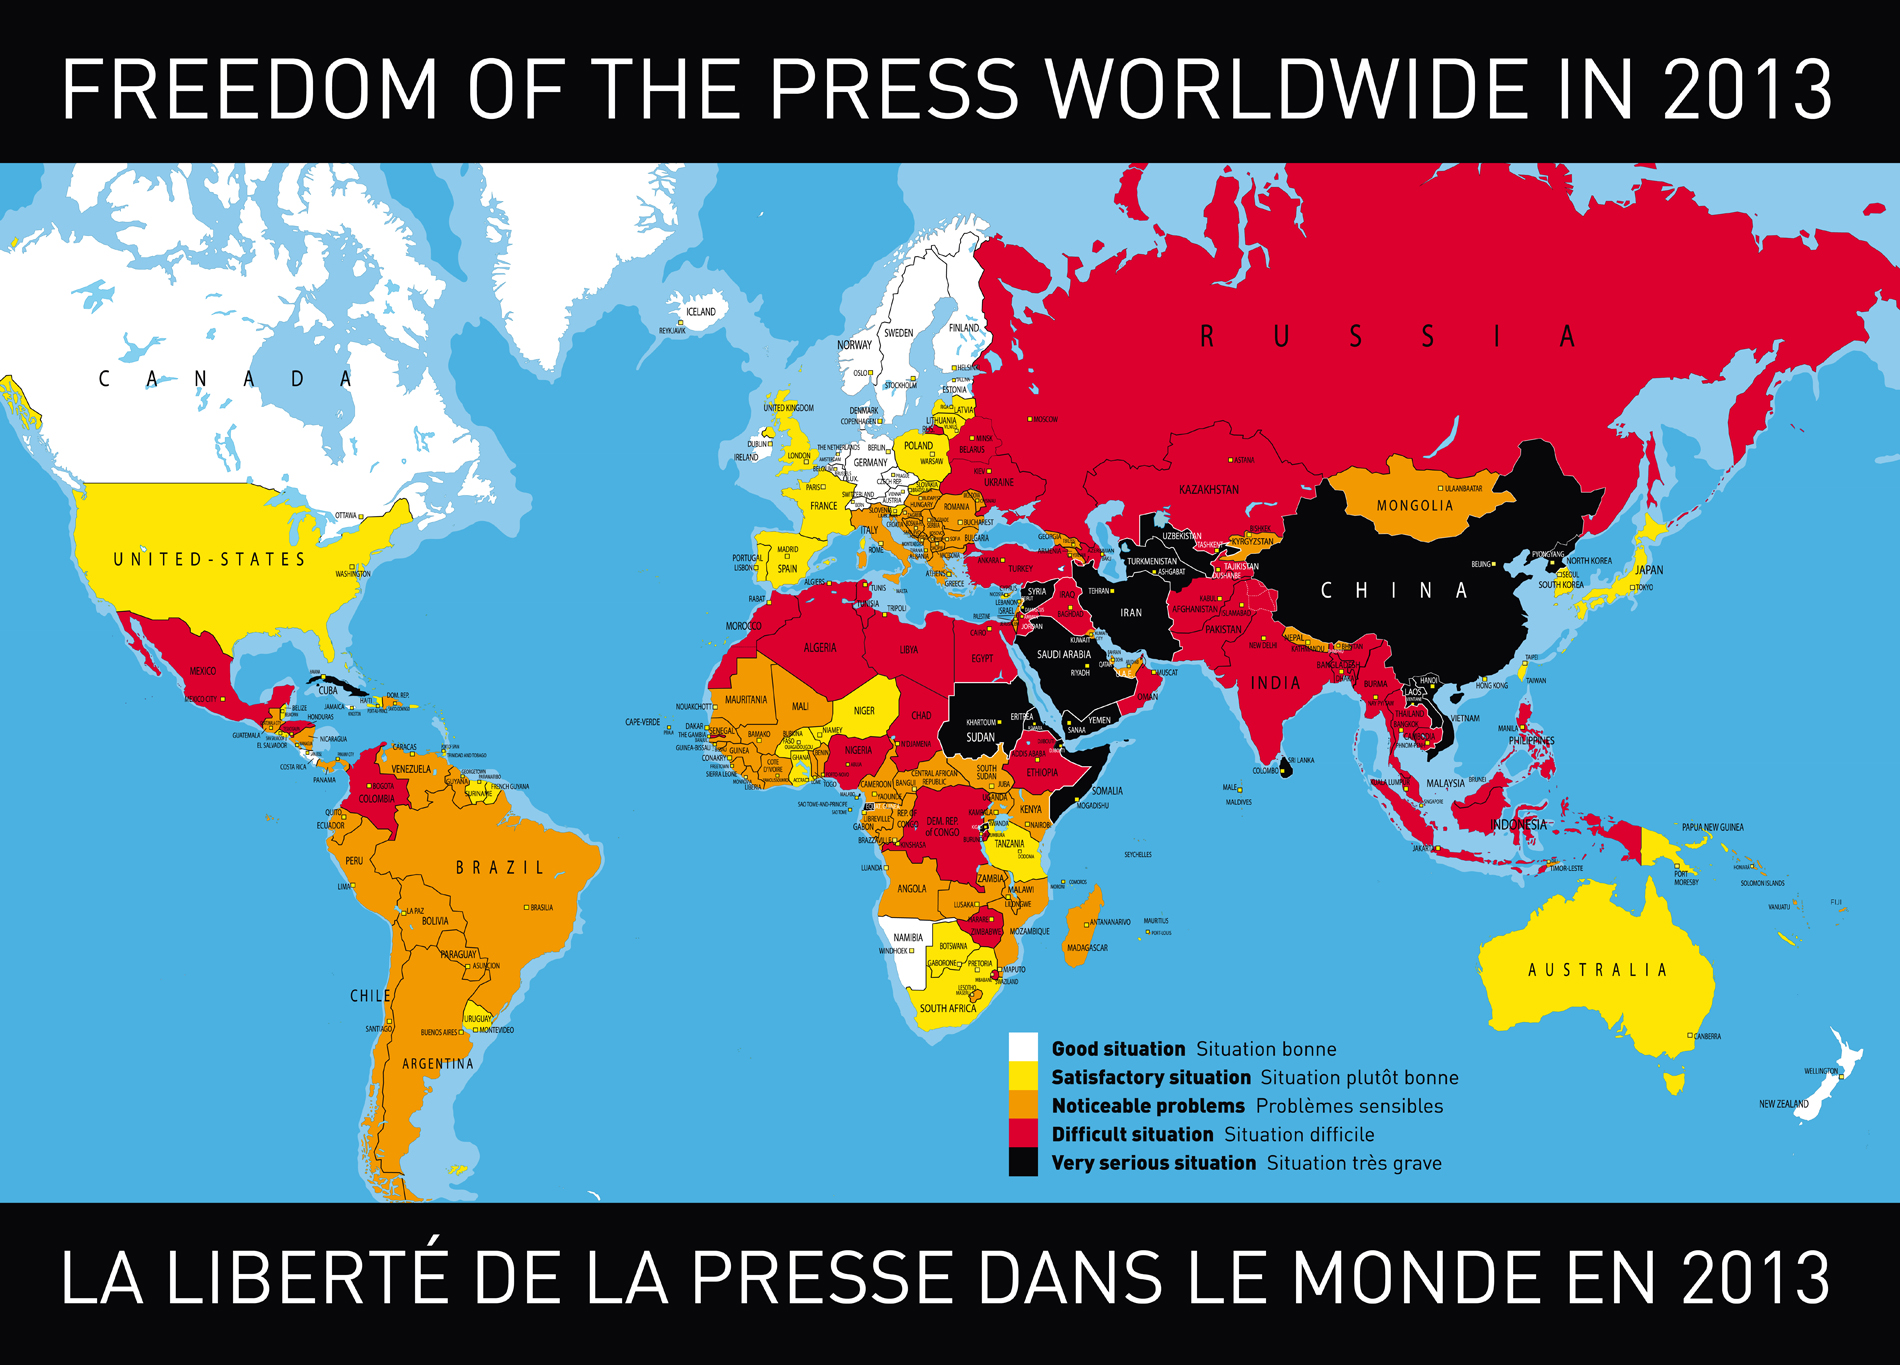 Freedom-of-the-press-worldwide-in-2013. Source: Reporters without Borders on facebook